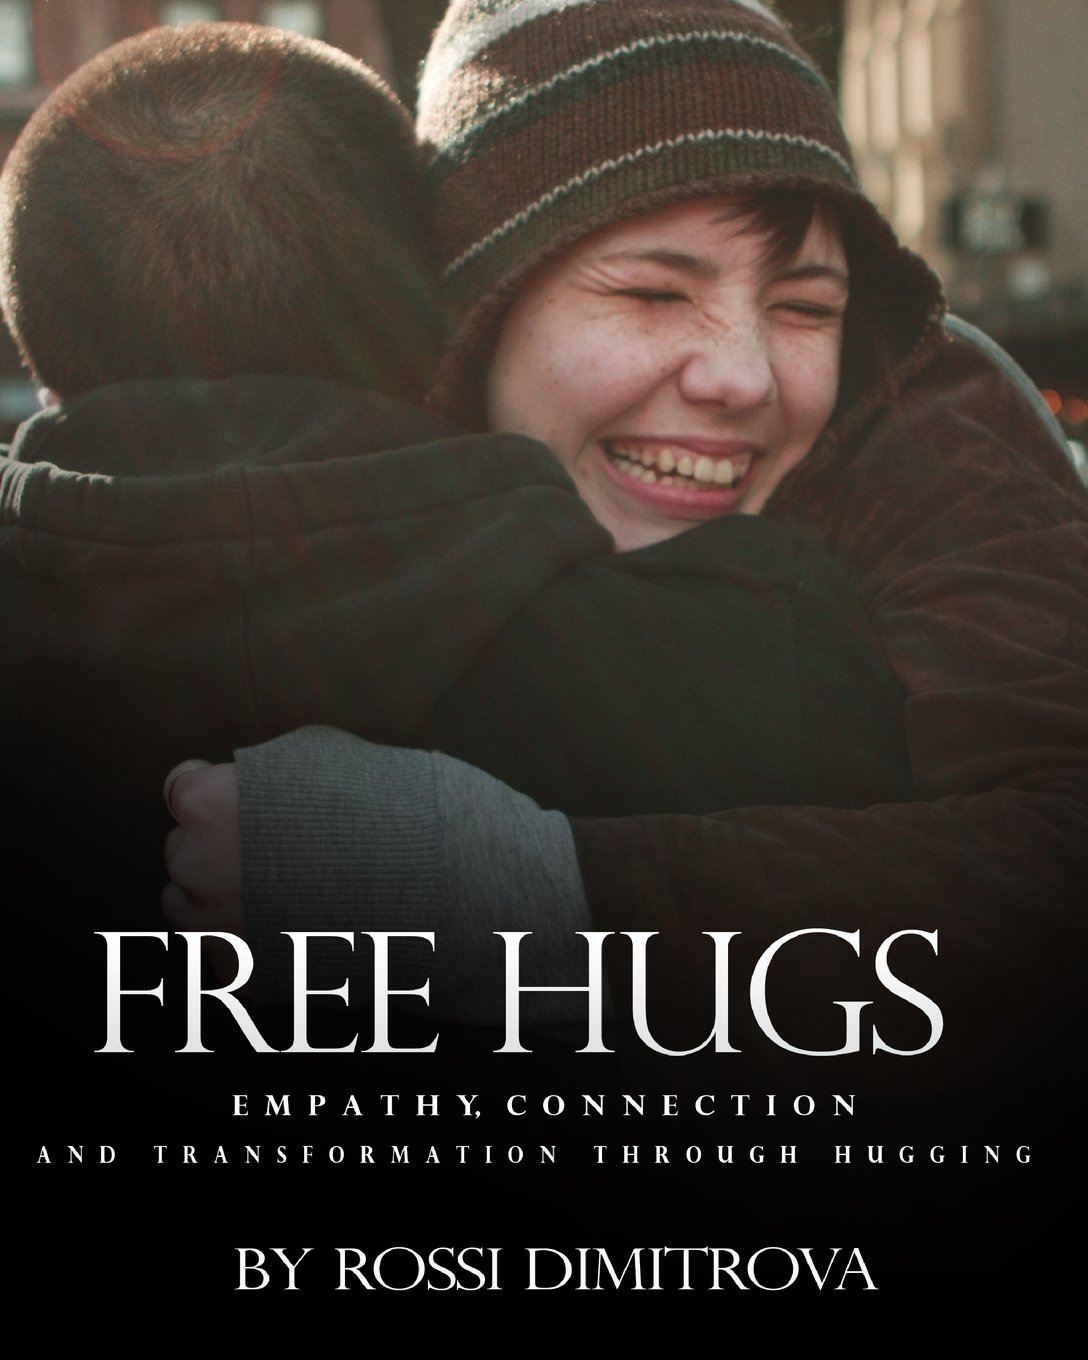 Download Free Hugs: Empathy, Connection and Transformation Through Hugging pdf